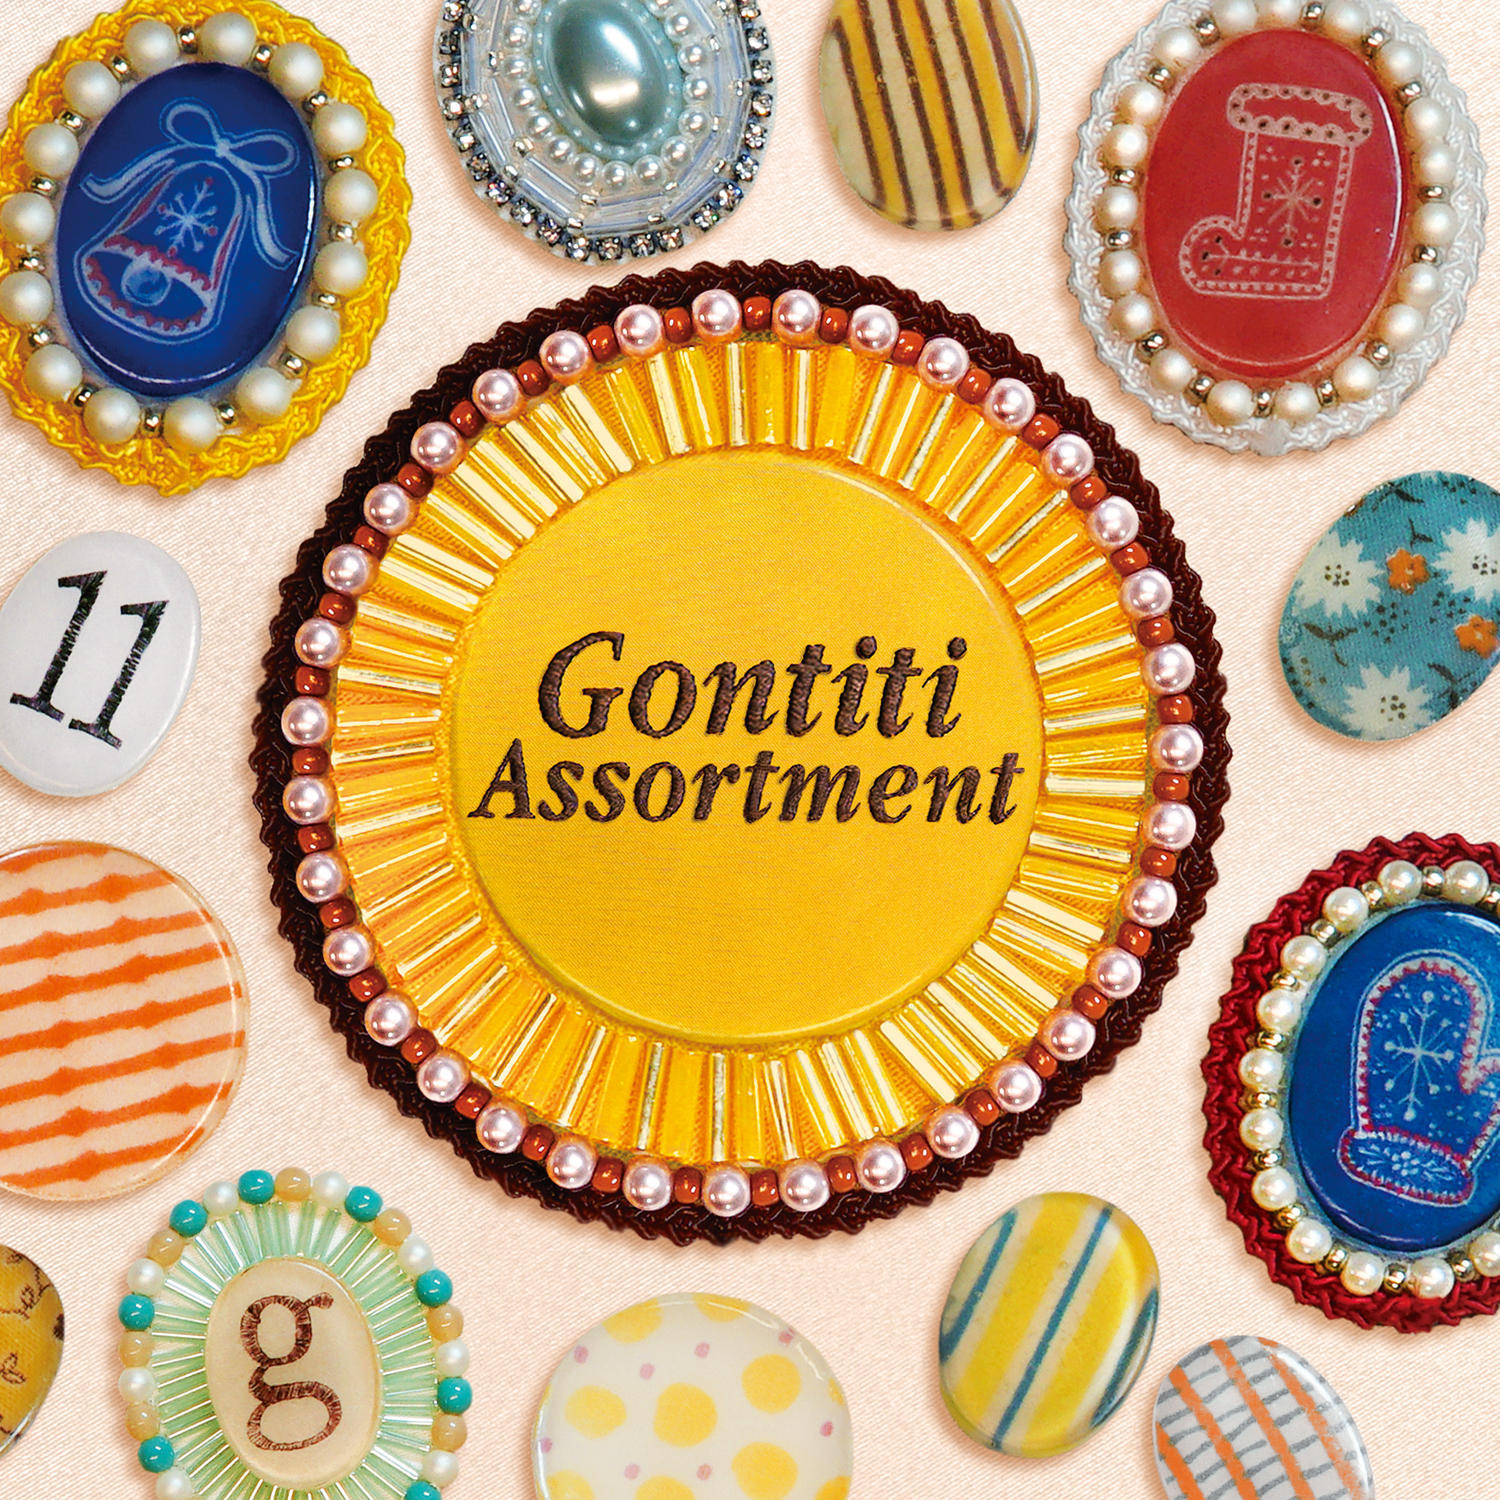 GONTITI_Assortment_JKT_1500pix.jpg